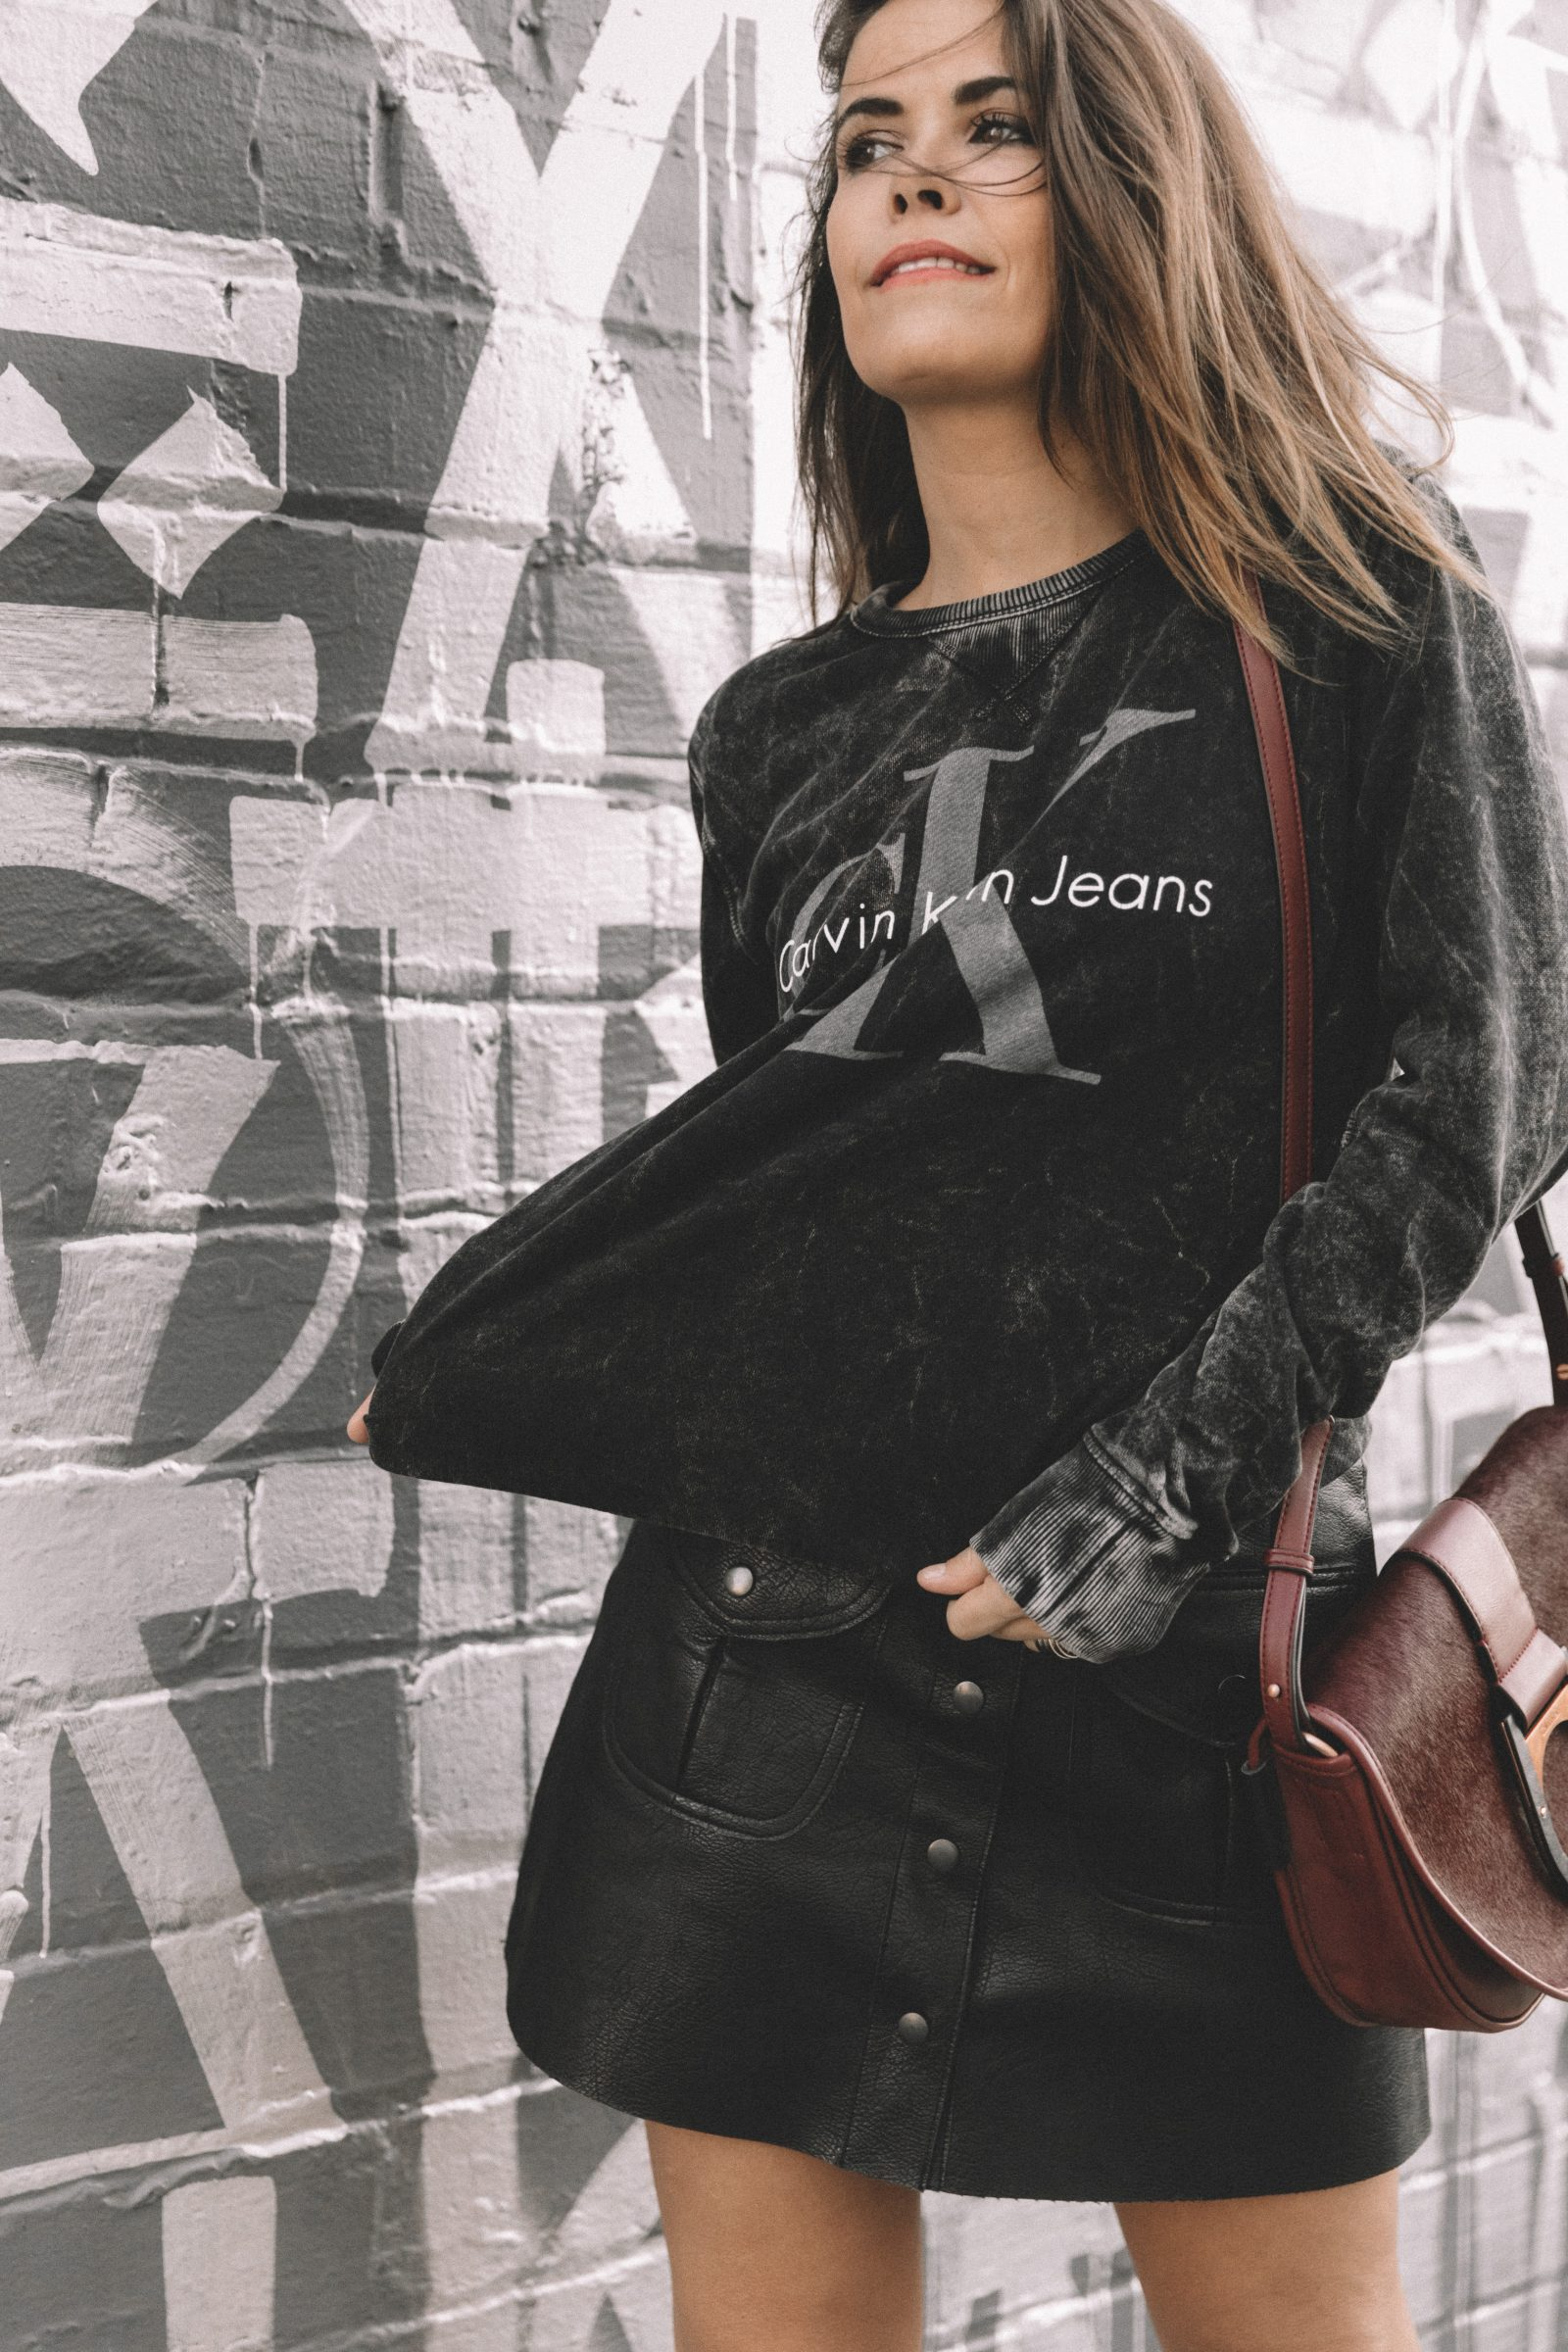 calvin_klein_bag-burgundy_bag-ck_sweatshirt-leather_shirt-total_black_outfit-street_style-los_angeles-collage_vintage-37